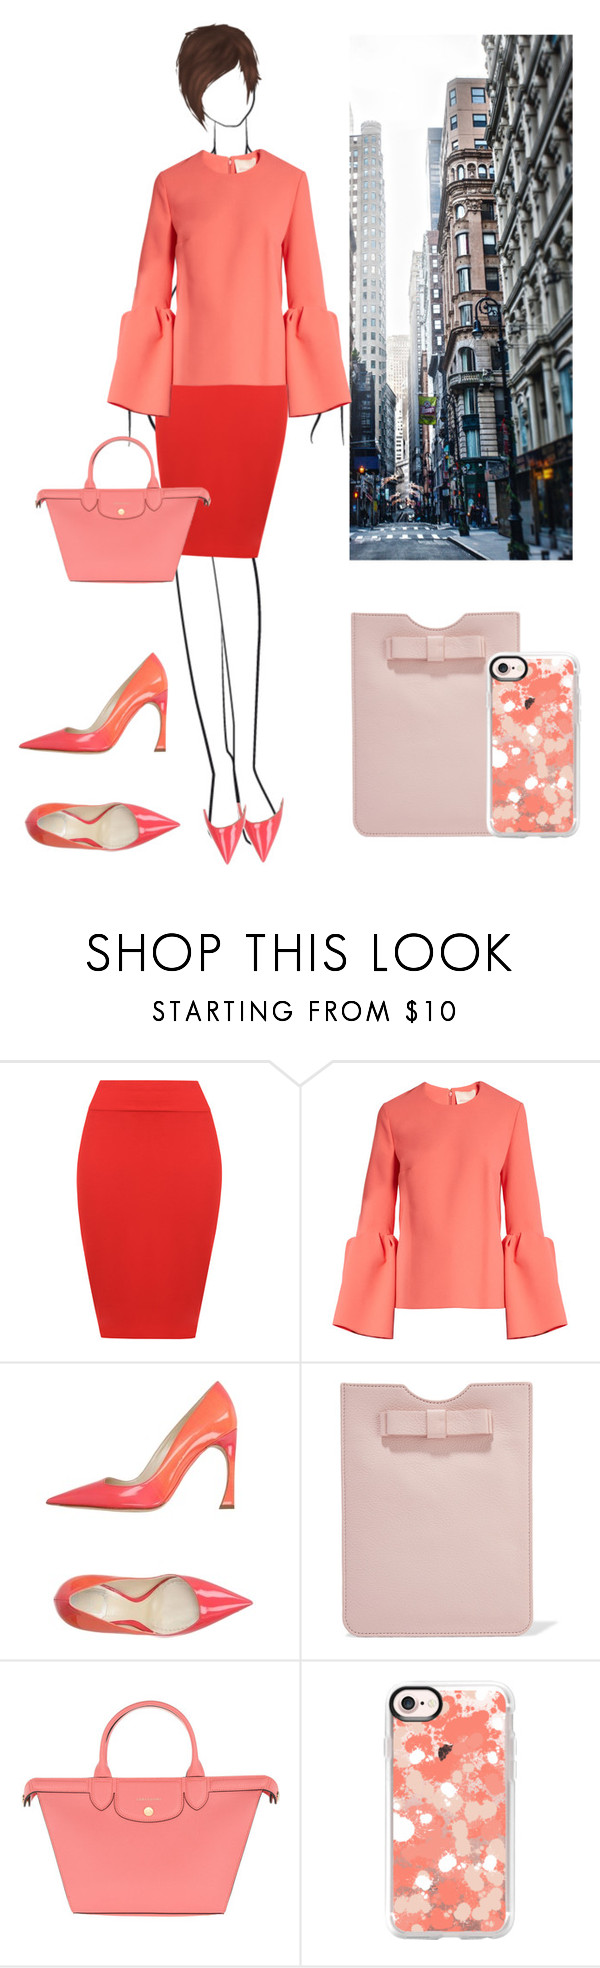 """Girl Boss: Coral and Red"" by loewenangel ❤ liked on Polyvore featuring WearAll, Roksanda, Christian Dior, RED Valentino, Longchamp, Casetify, red, coral, 37 and GIRLBOSS"